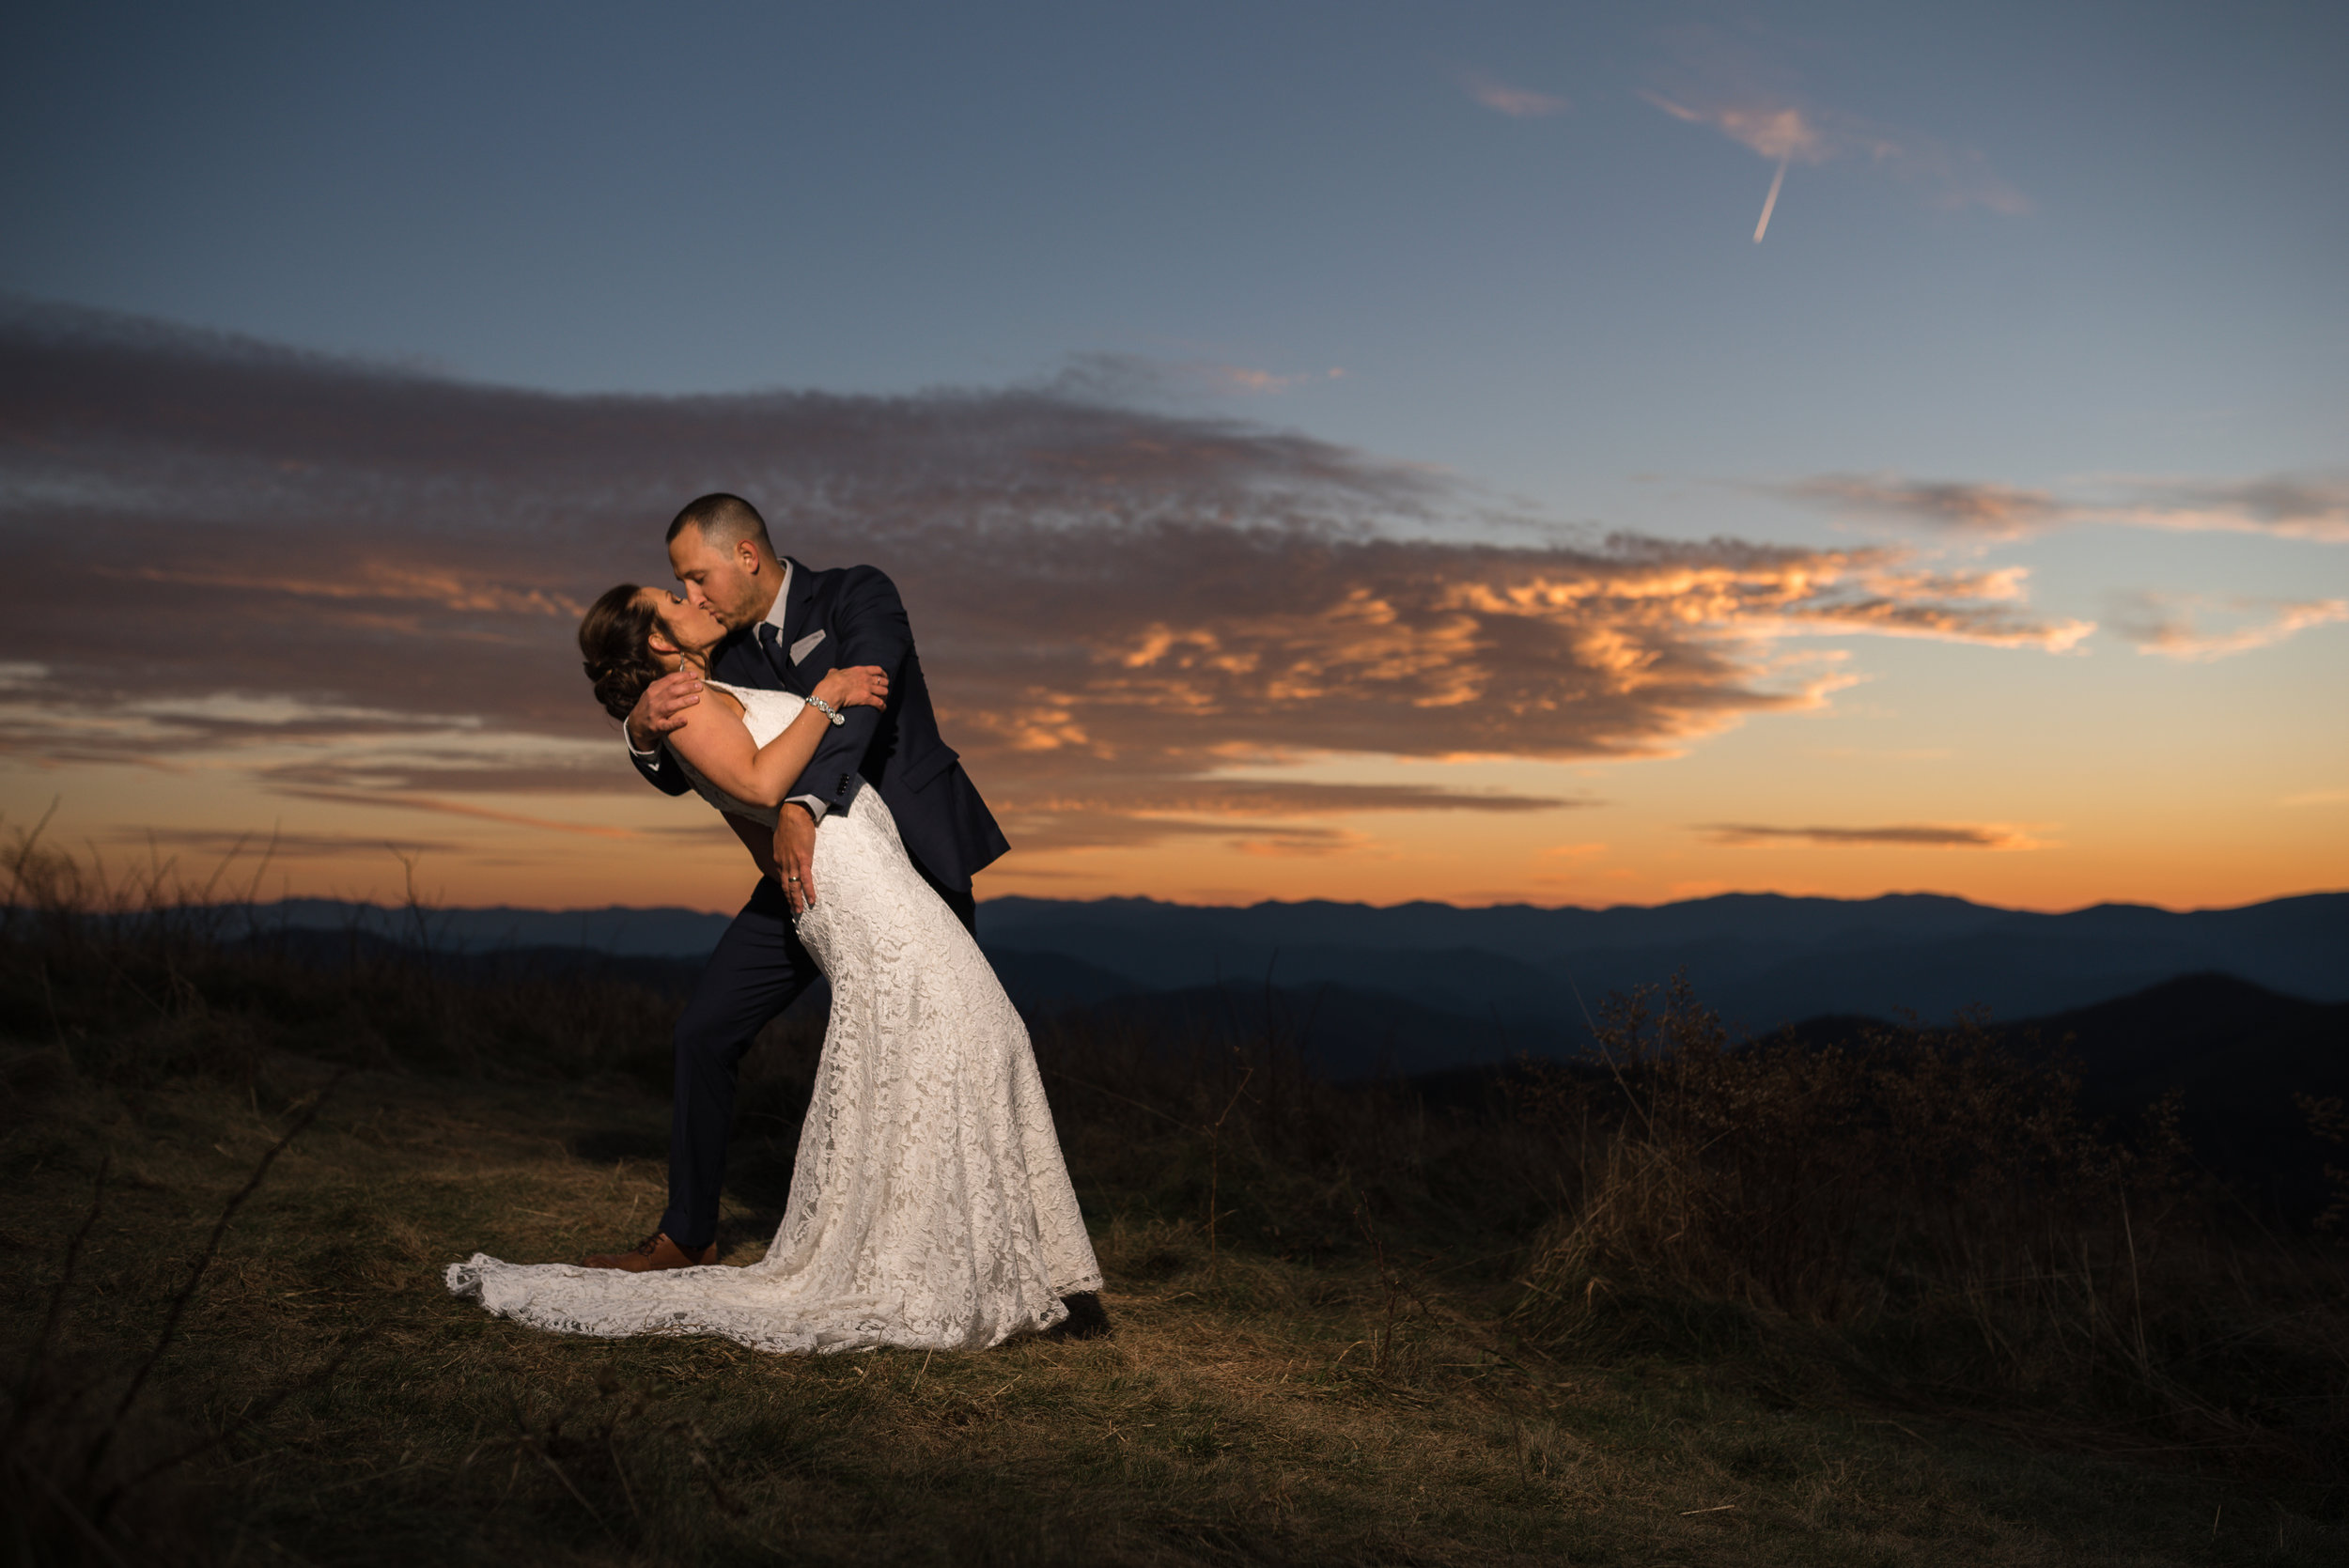 We can't wait to capture your love story! Contact us today and mention this ad for $200 off all wedding packages!